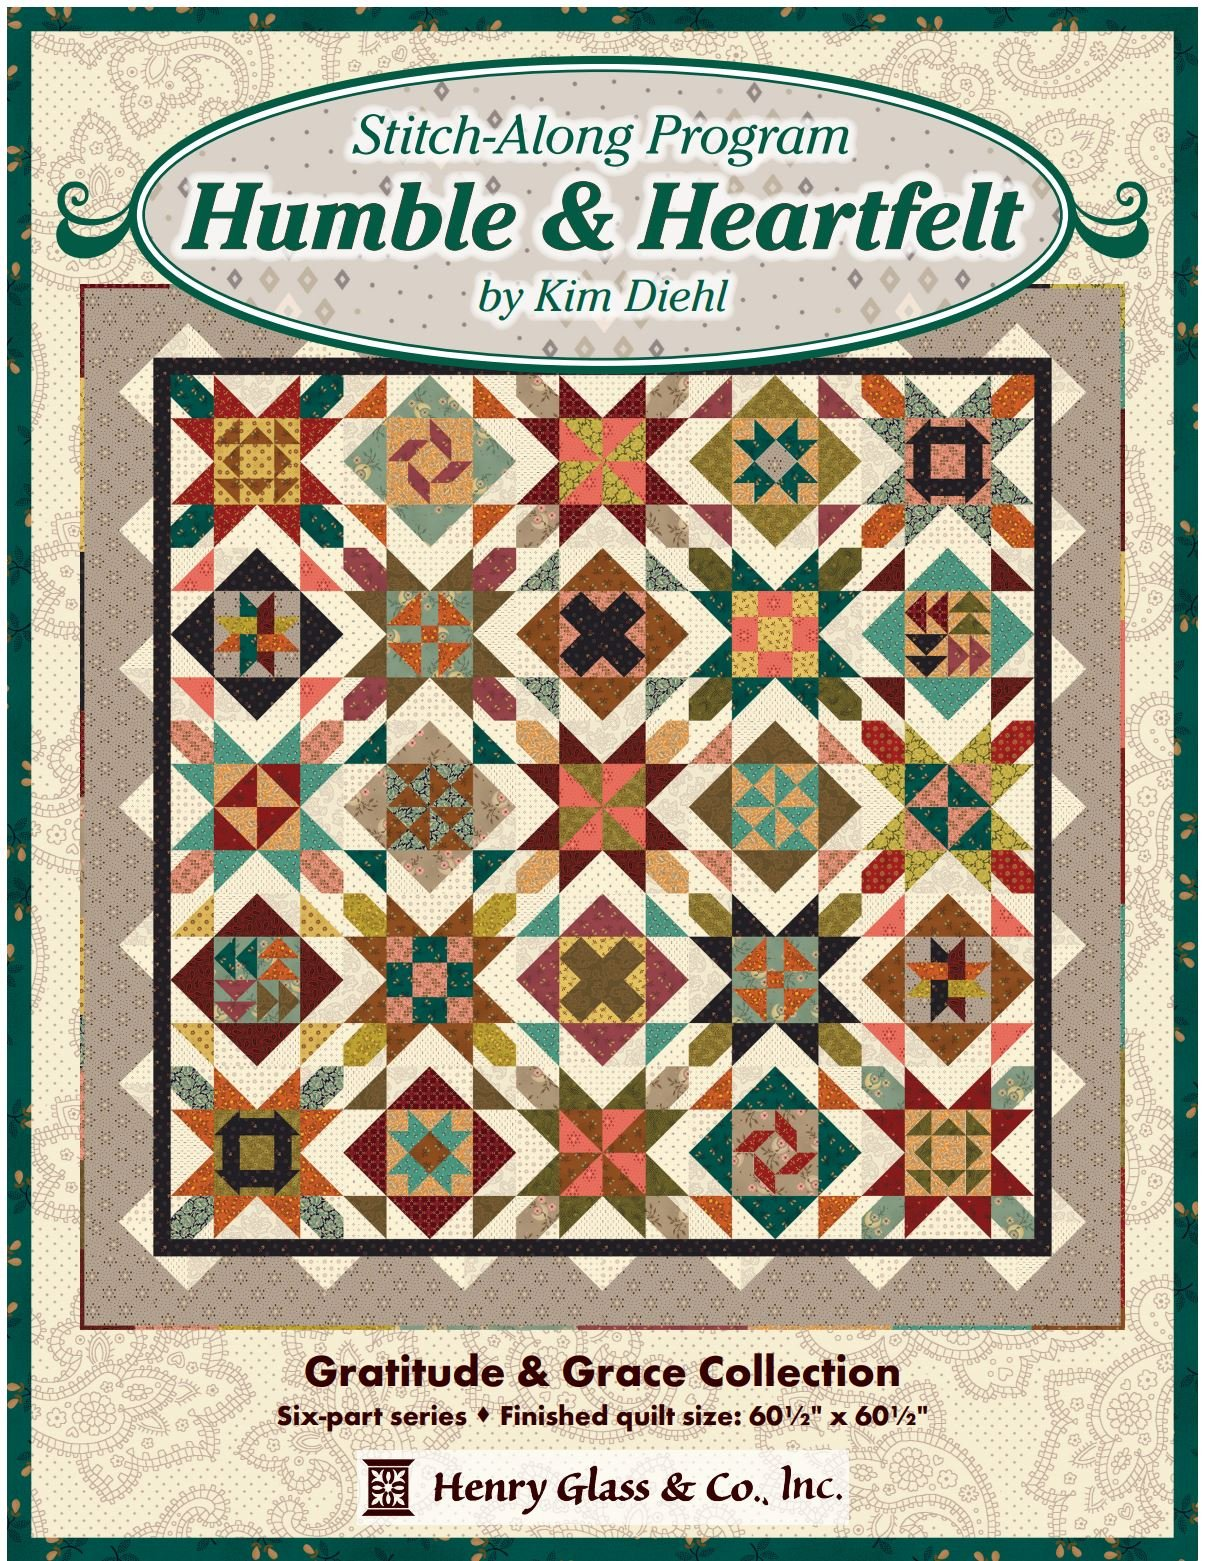 Humble & Heartfelt by Kim Diehl Block of the Month 1